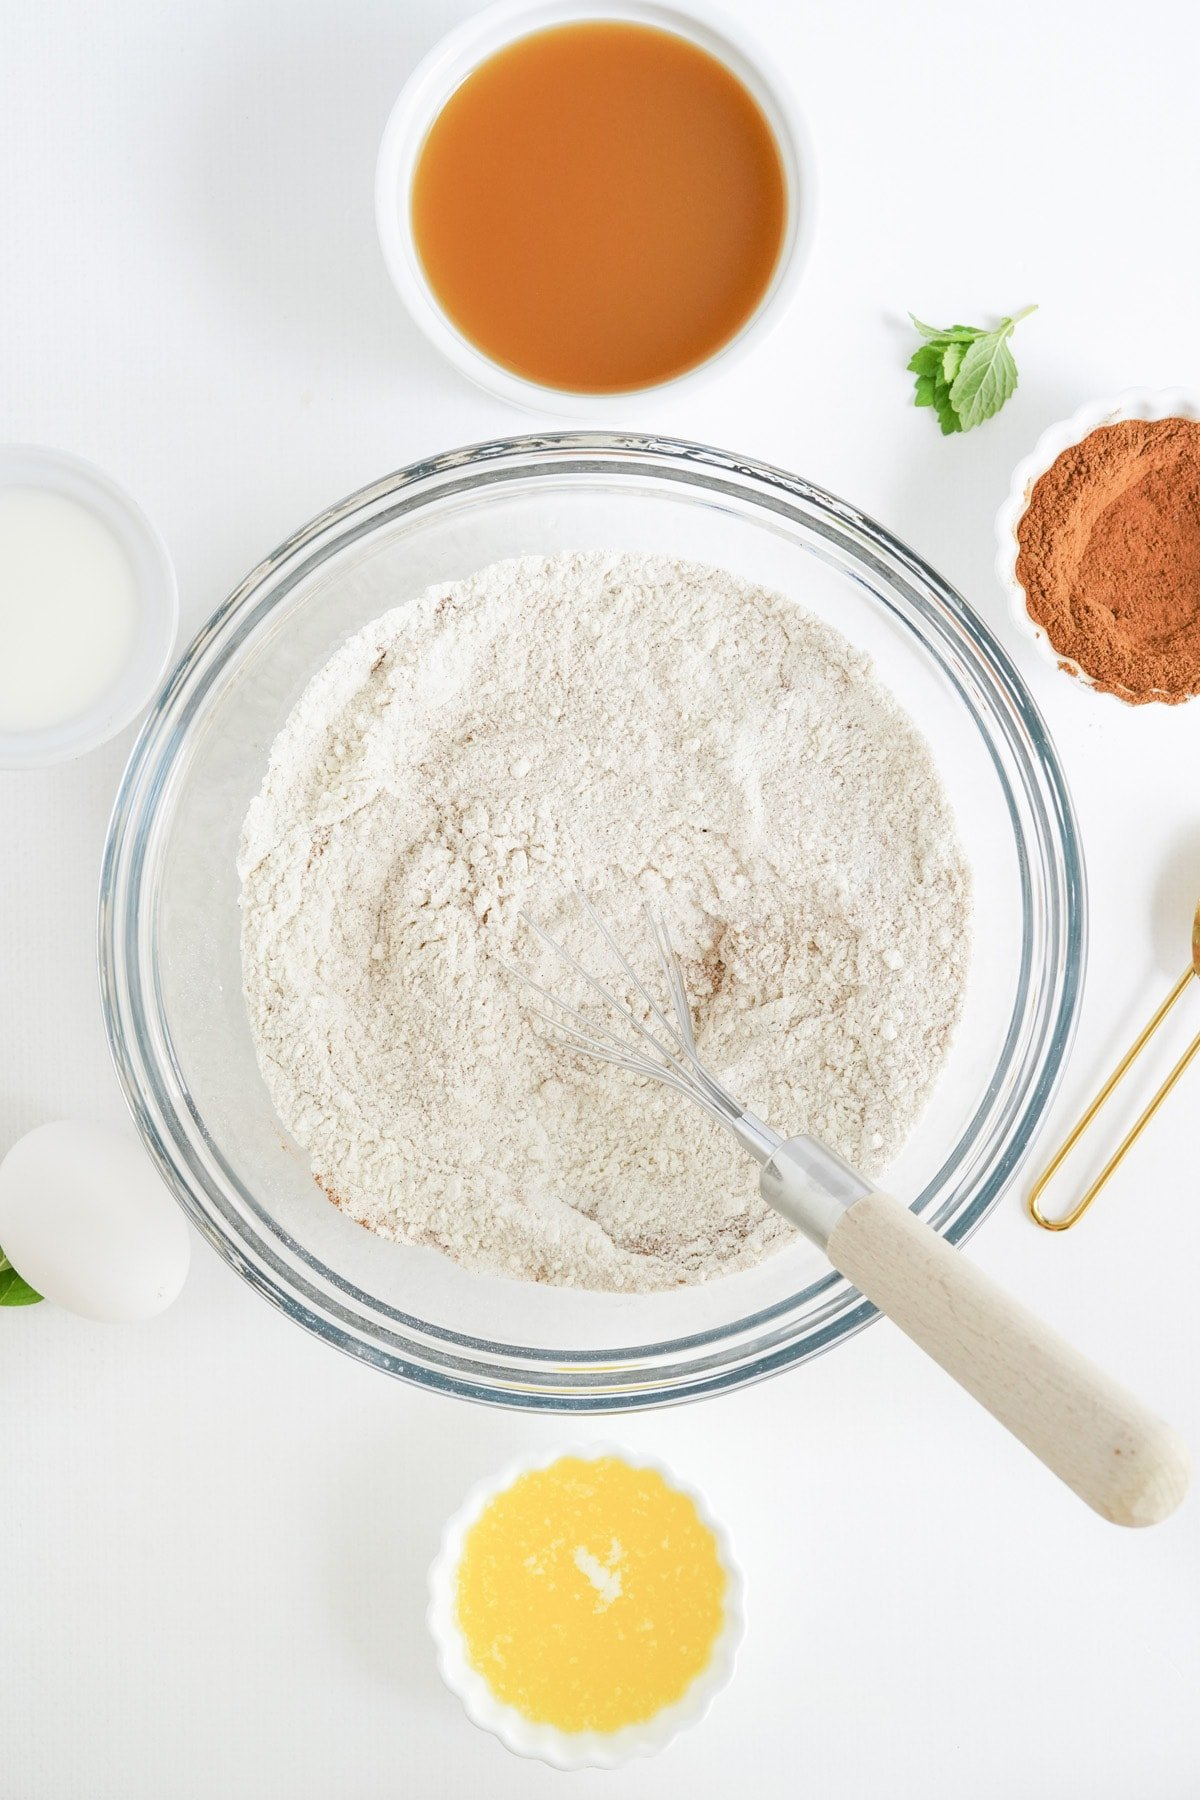 In a large bowl, combine the flour, baking powder, cinnamon and sugar and whisk until combined